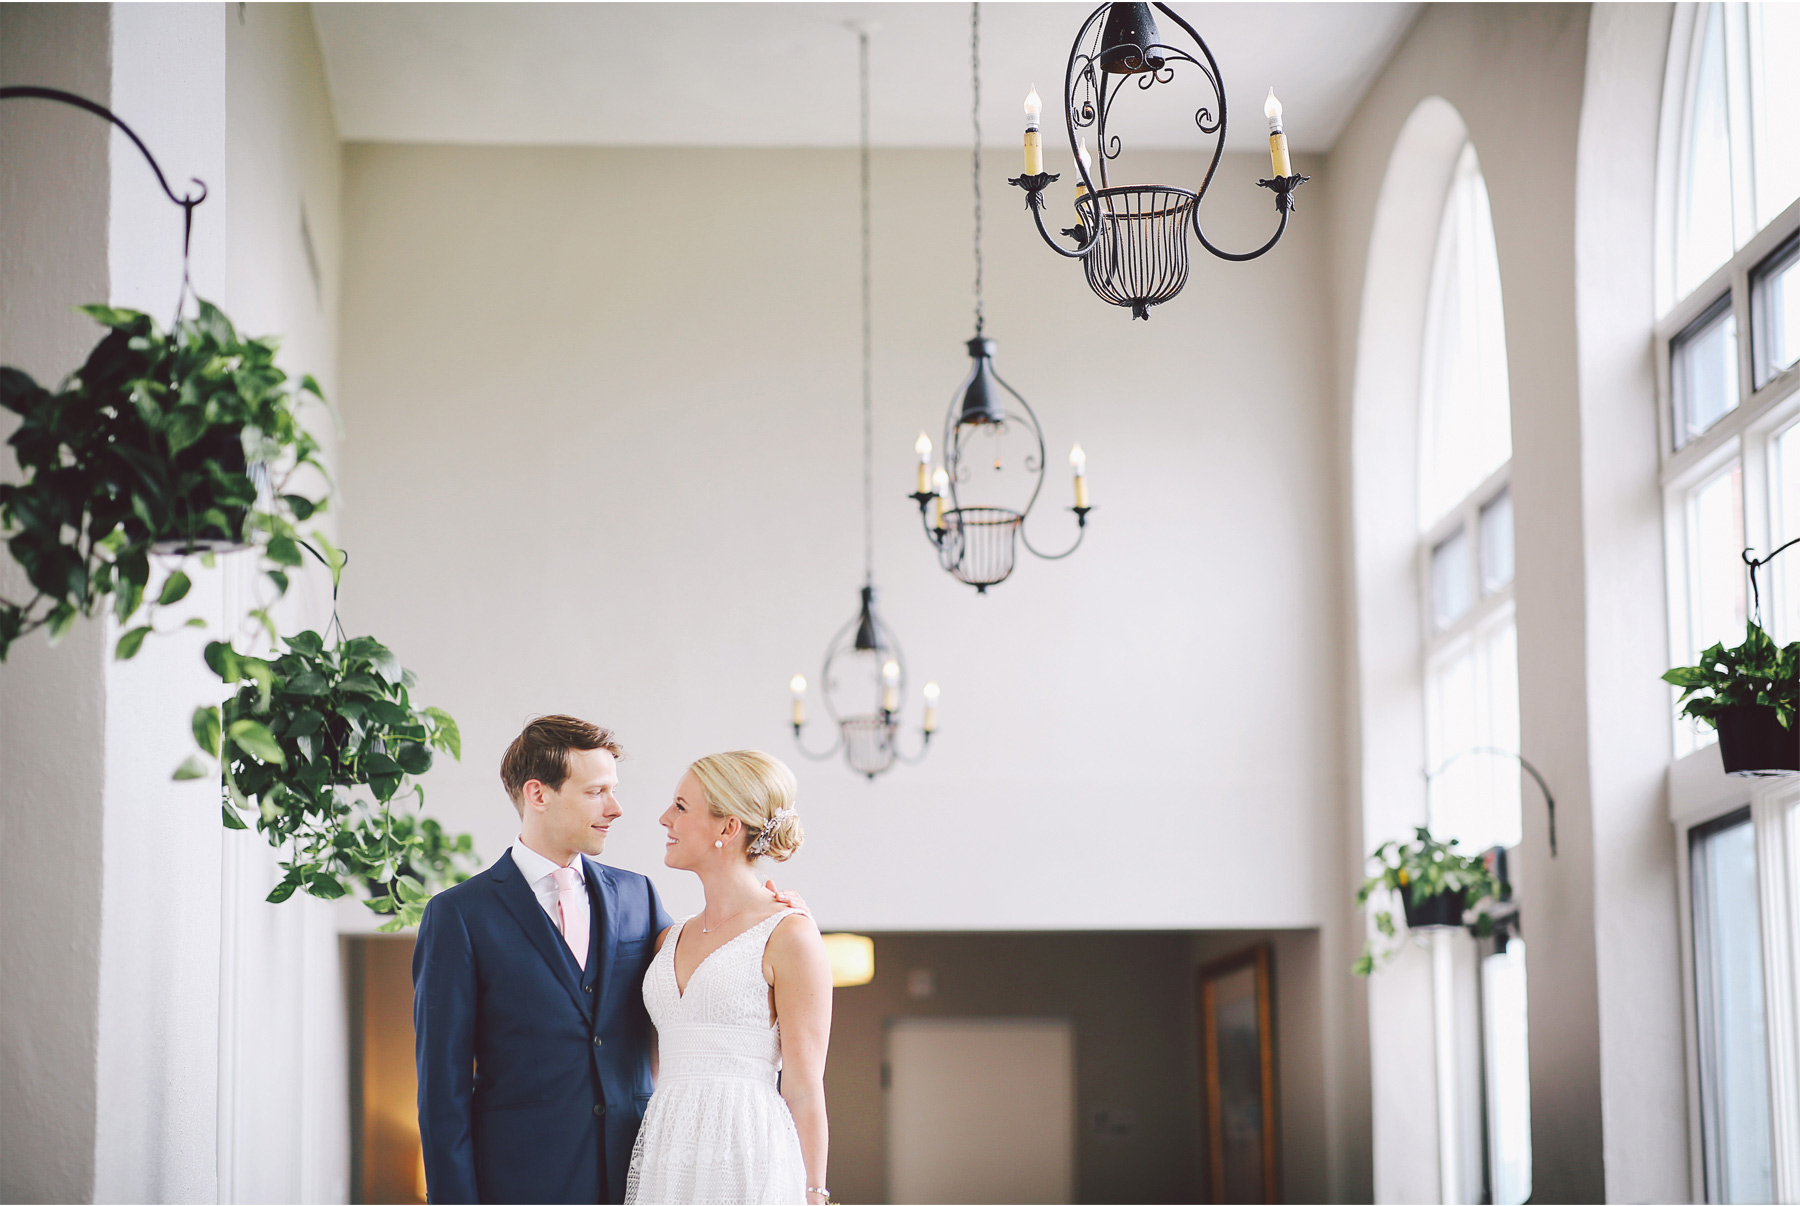 06-Minneapolis-Minnesota-Wedding-Photography-by-Vick-Photography-Lafayette-Club-First-Look-Maggie-and-Nicholas.jpg